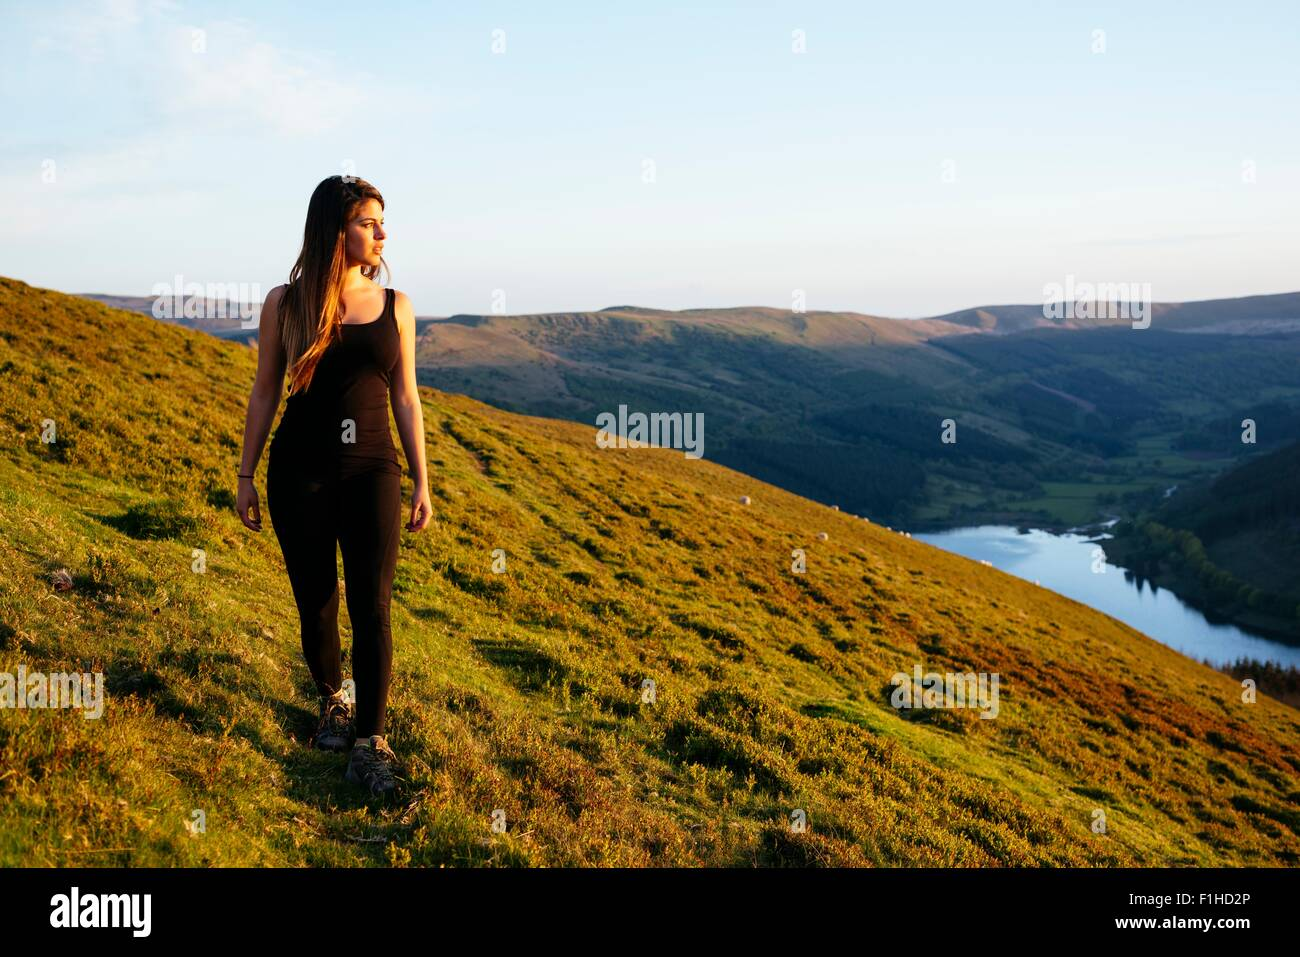 Young woman strolling, Talybont Reservoir in Glyn Collwn valley, Brecon Beacons, Powys, Wales - Stock Image